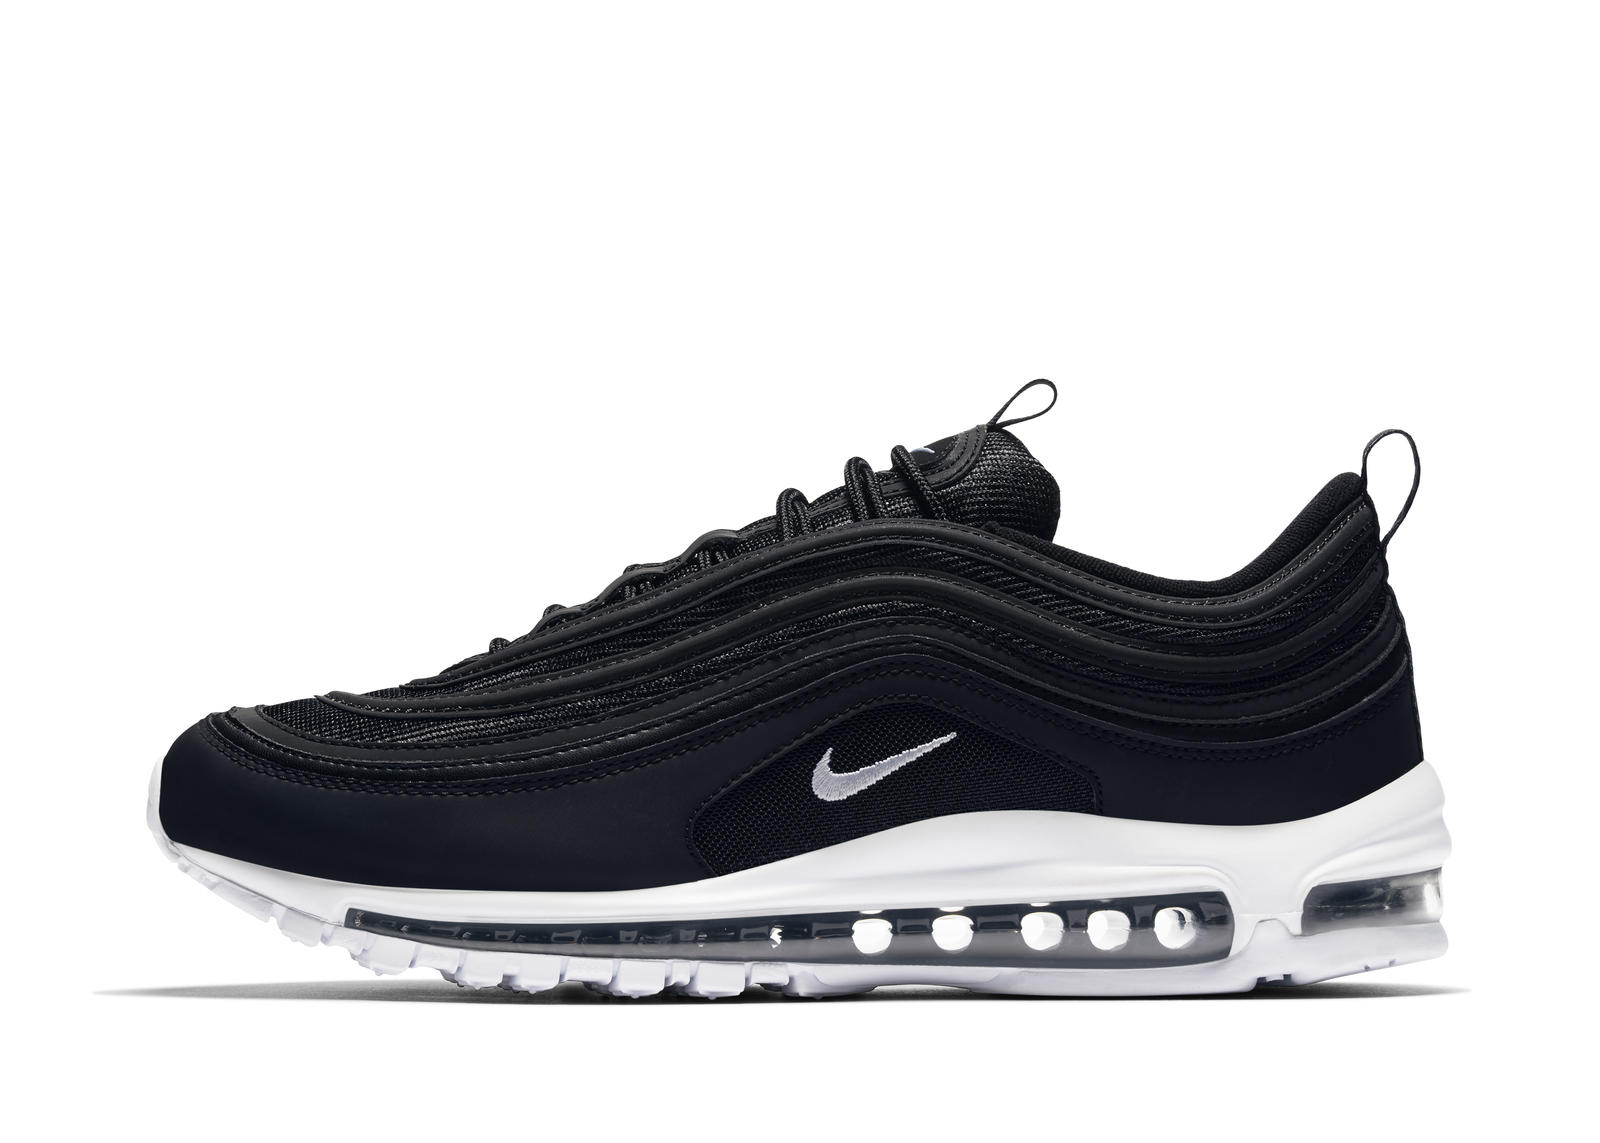 cb2539e20f Acquista nike air max 97 2017 - OFF72% sconti